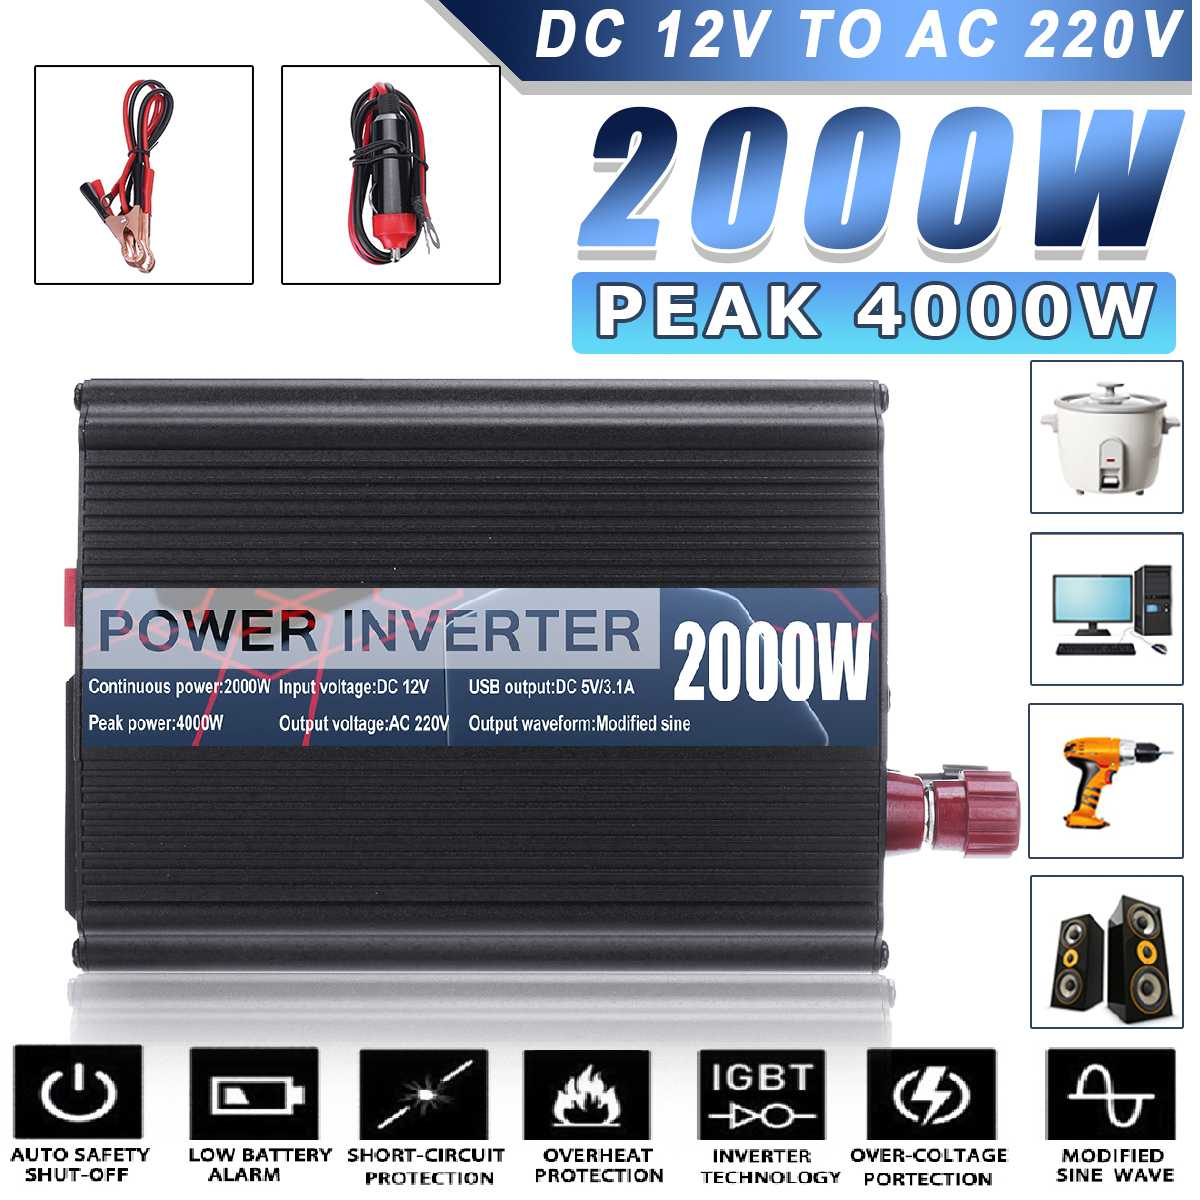 4000W DC 12V to AC 220V Dual USB Car Power Inverter Charger Converter Adapter DC <font><b>12</b></font> to AC <font><b>220</b></font> Modified Sine Wave Transformer image